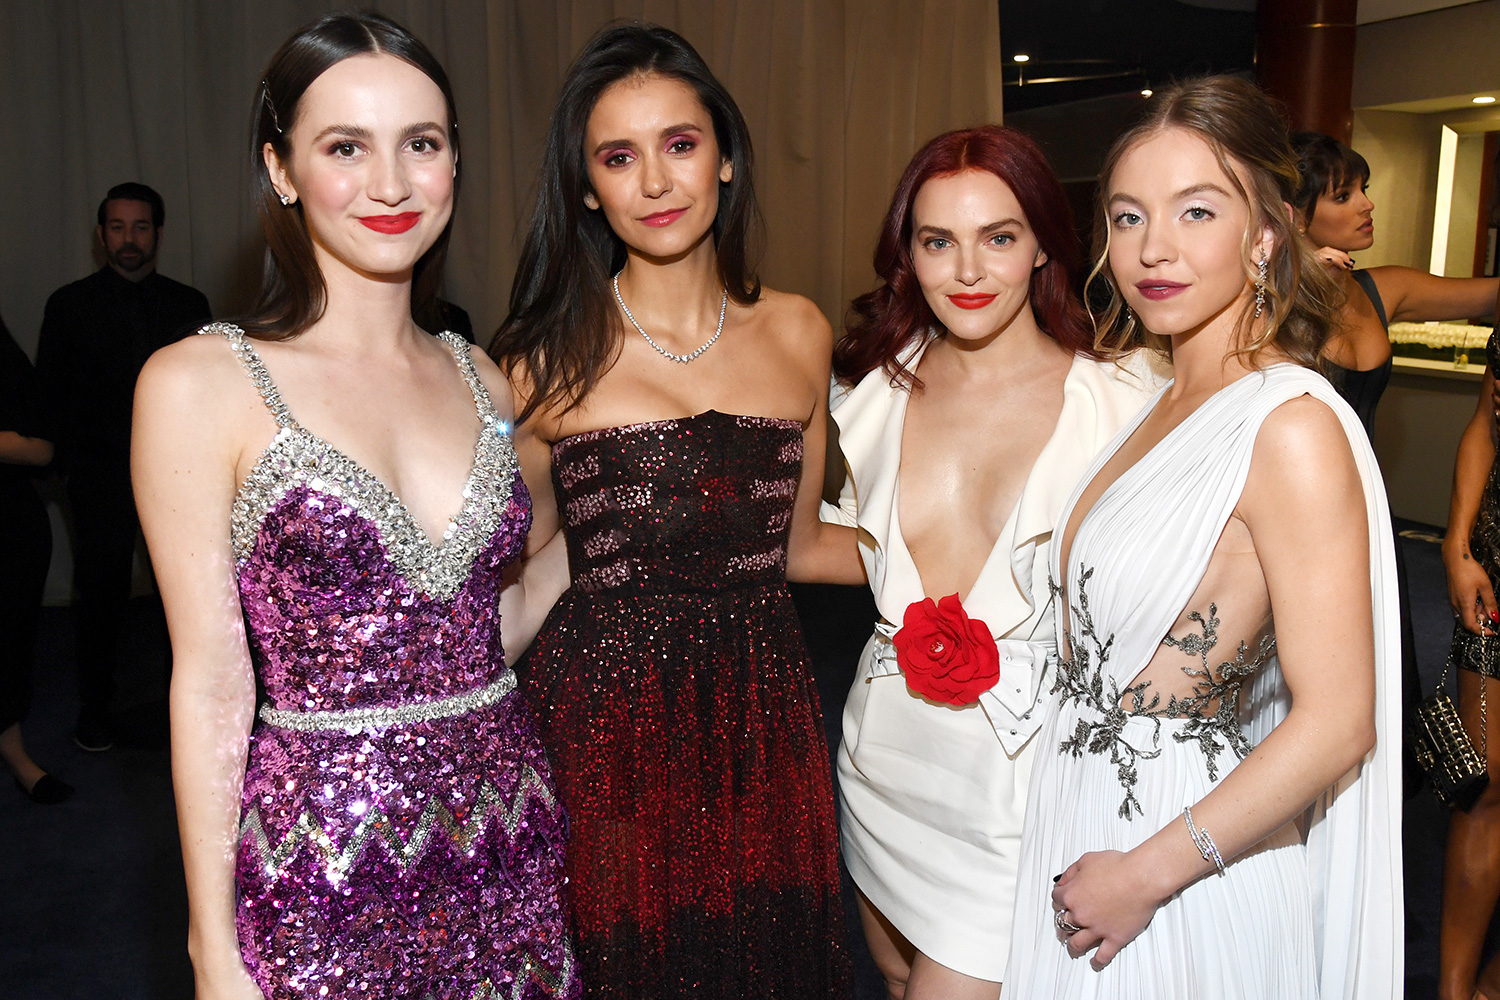 Maude Apatow, Nina Dobrev, Madeline Brewer, and Sydney Sweeney